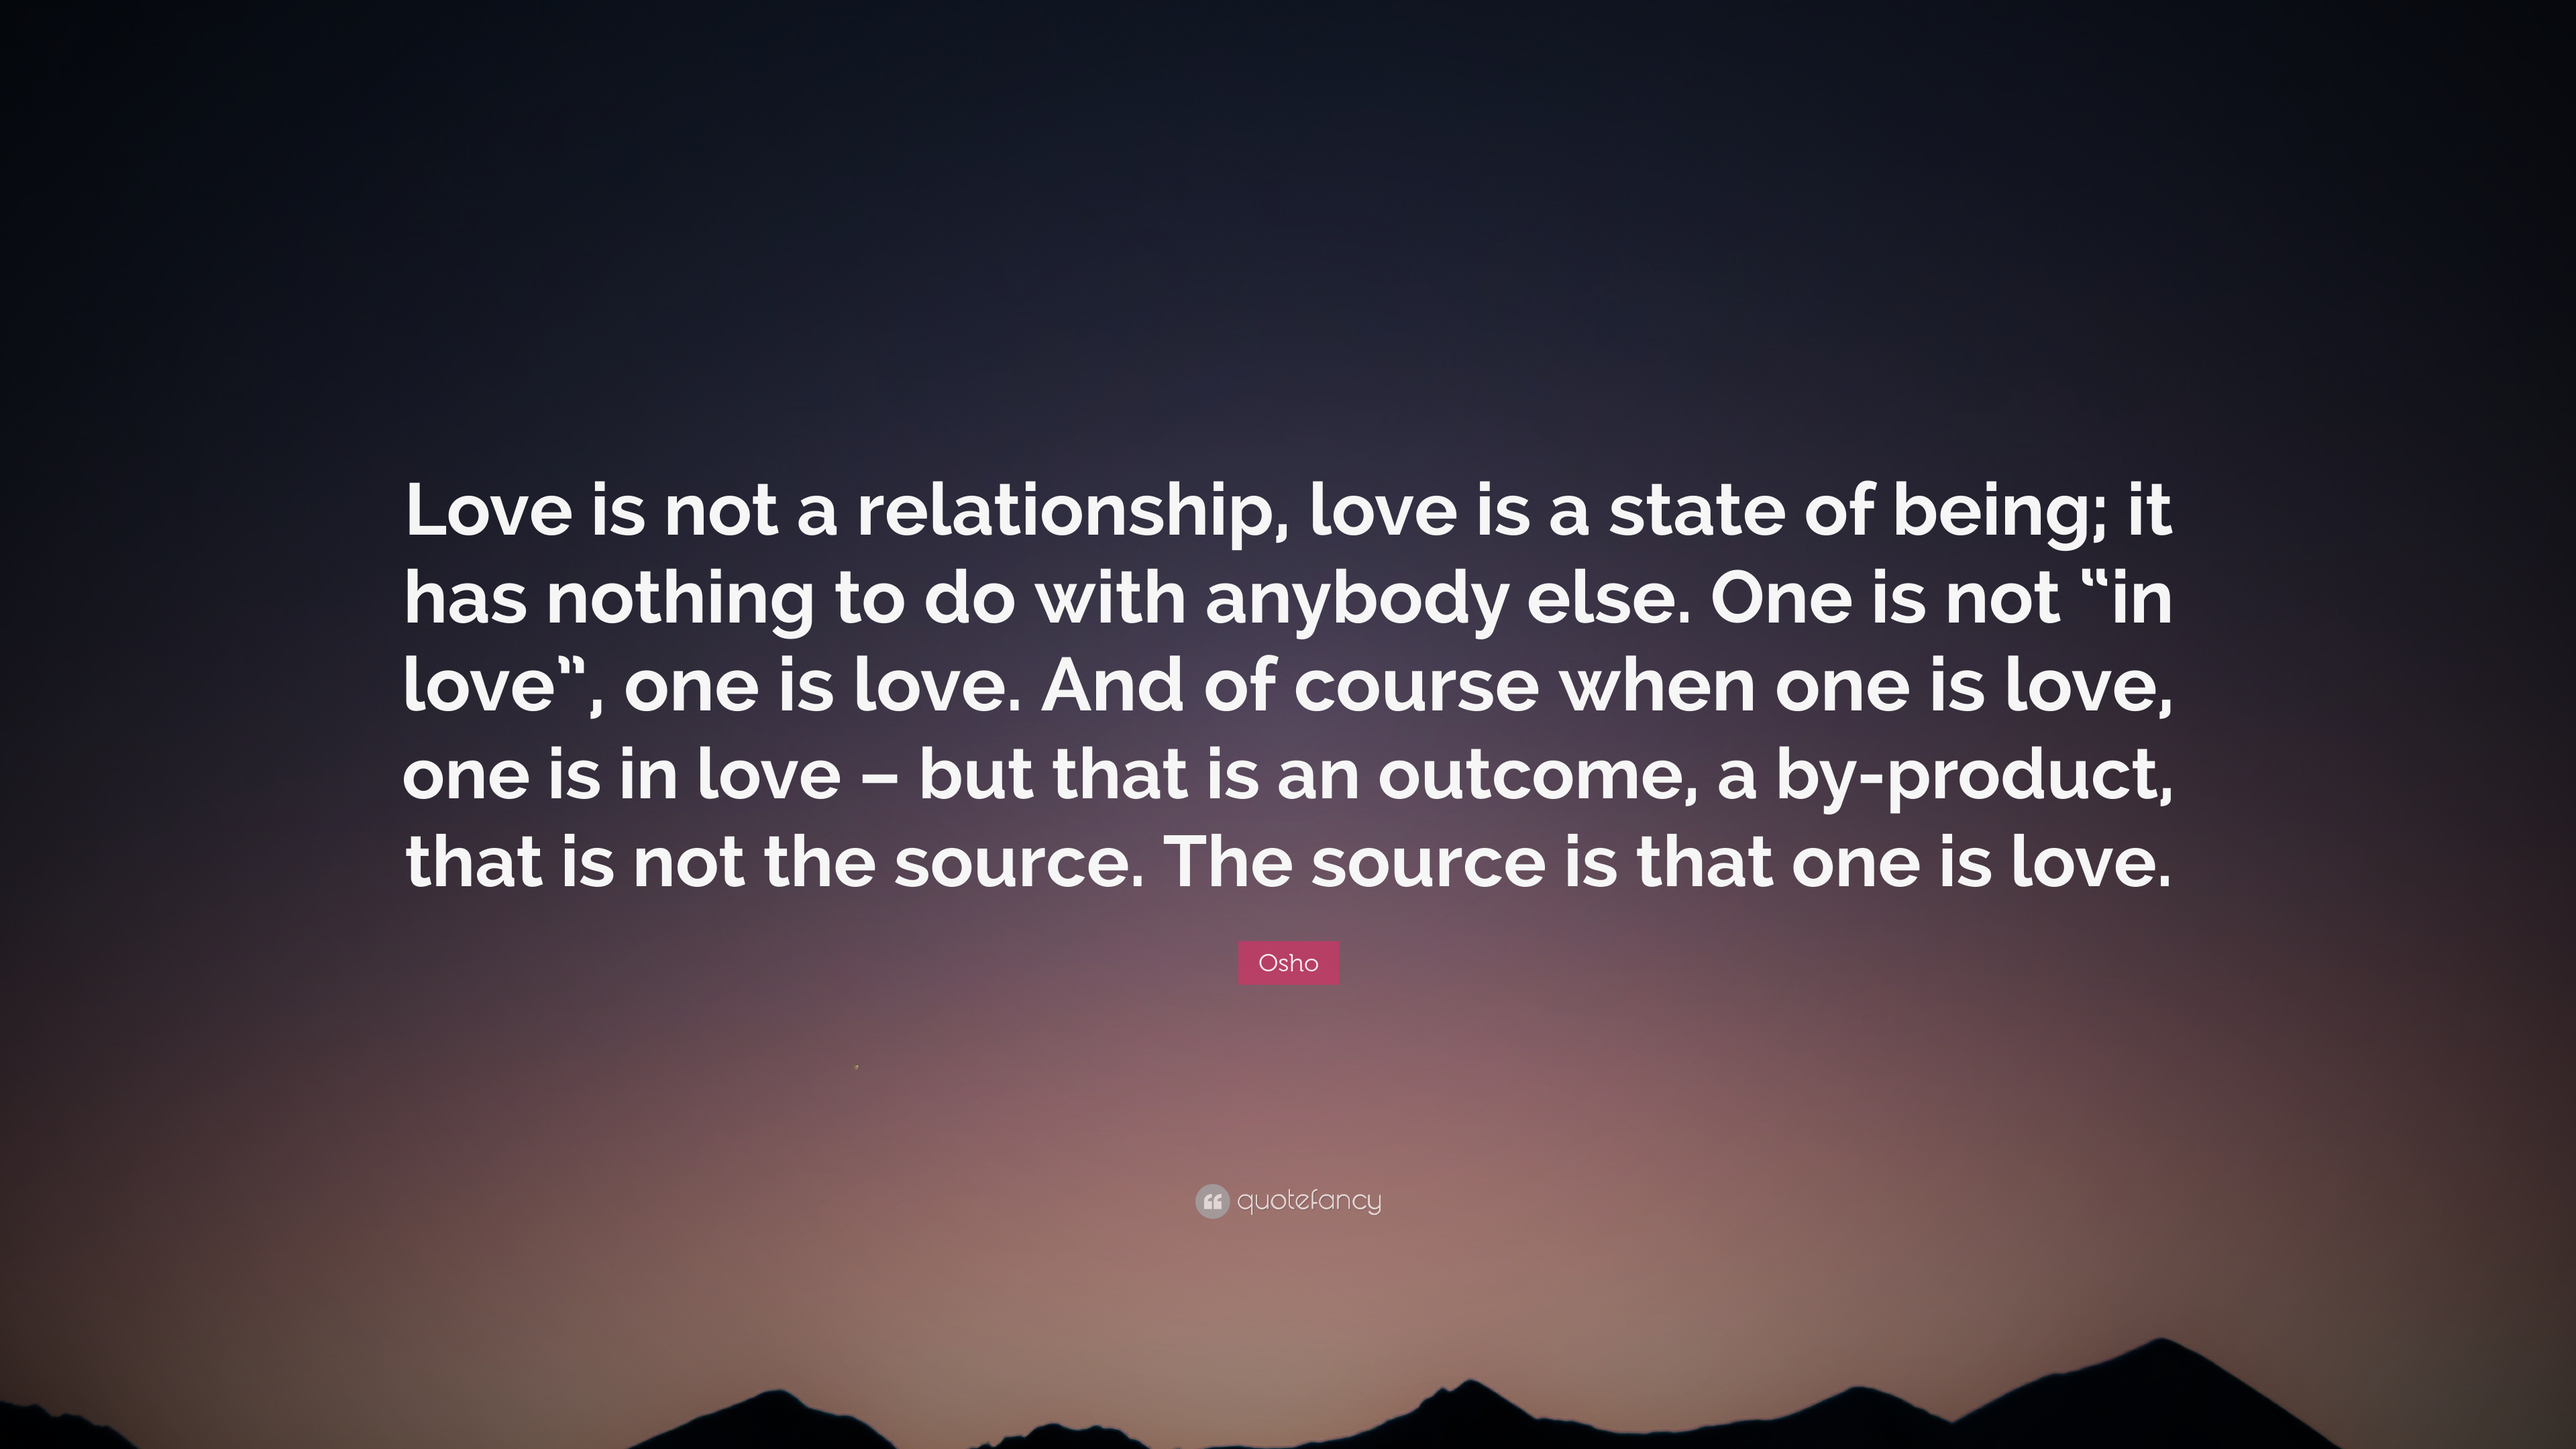 Image of: Sayings Osho Quote love Is Not Relationship Love Is State Of Being Quotefancy Osho Quote love Is Not Relationship Love Is State Of Being